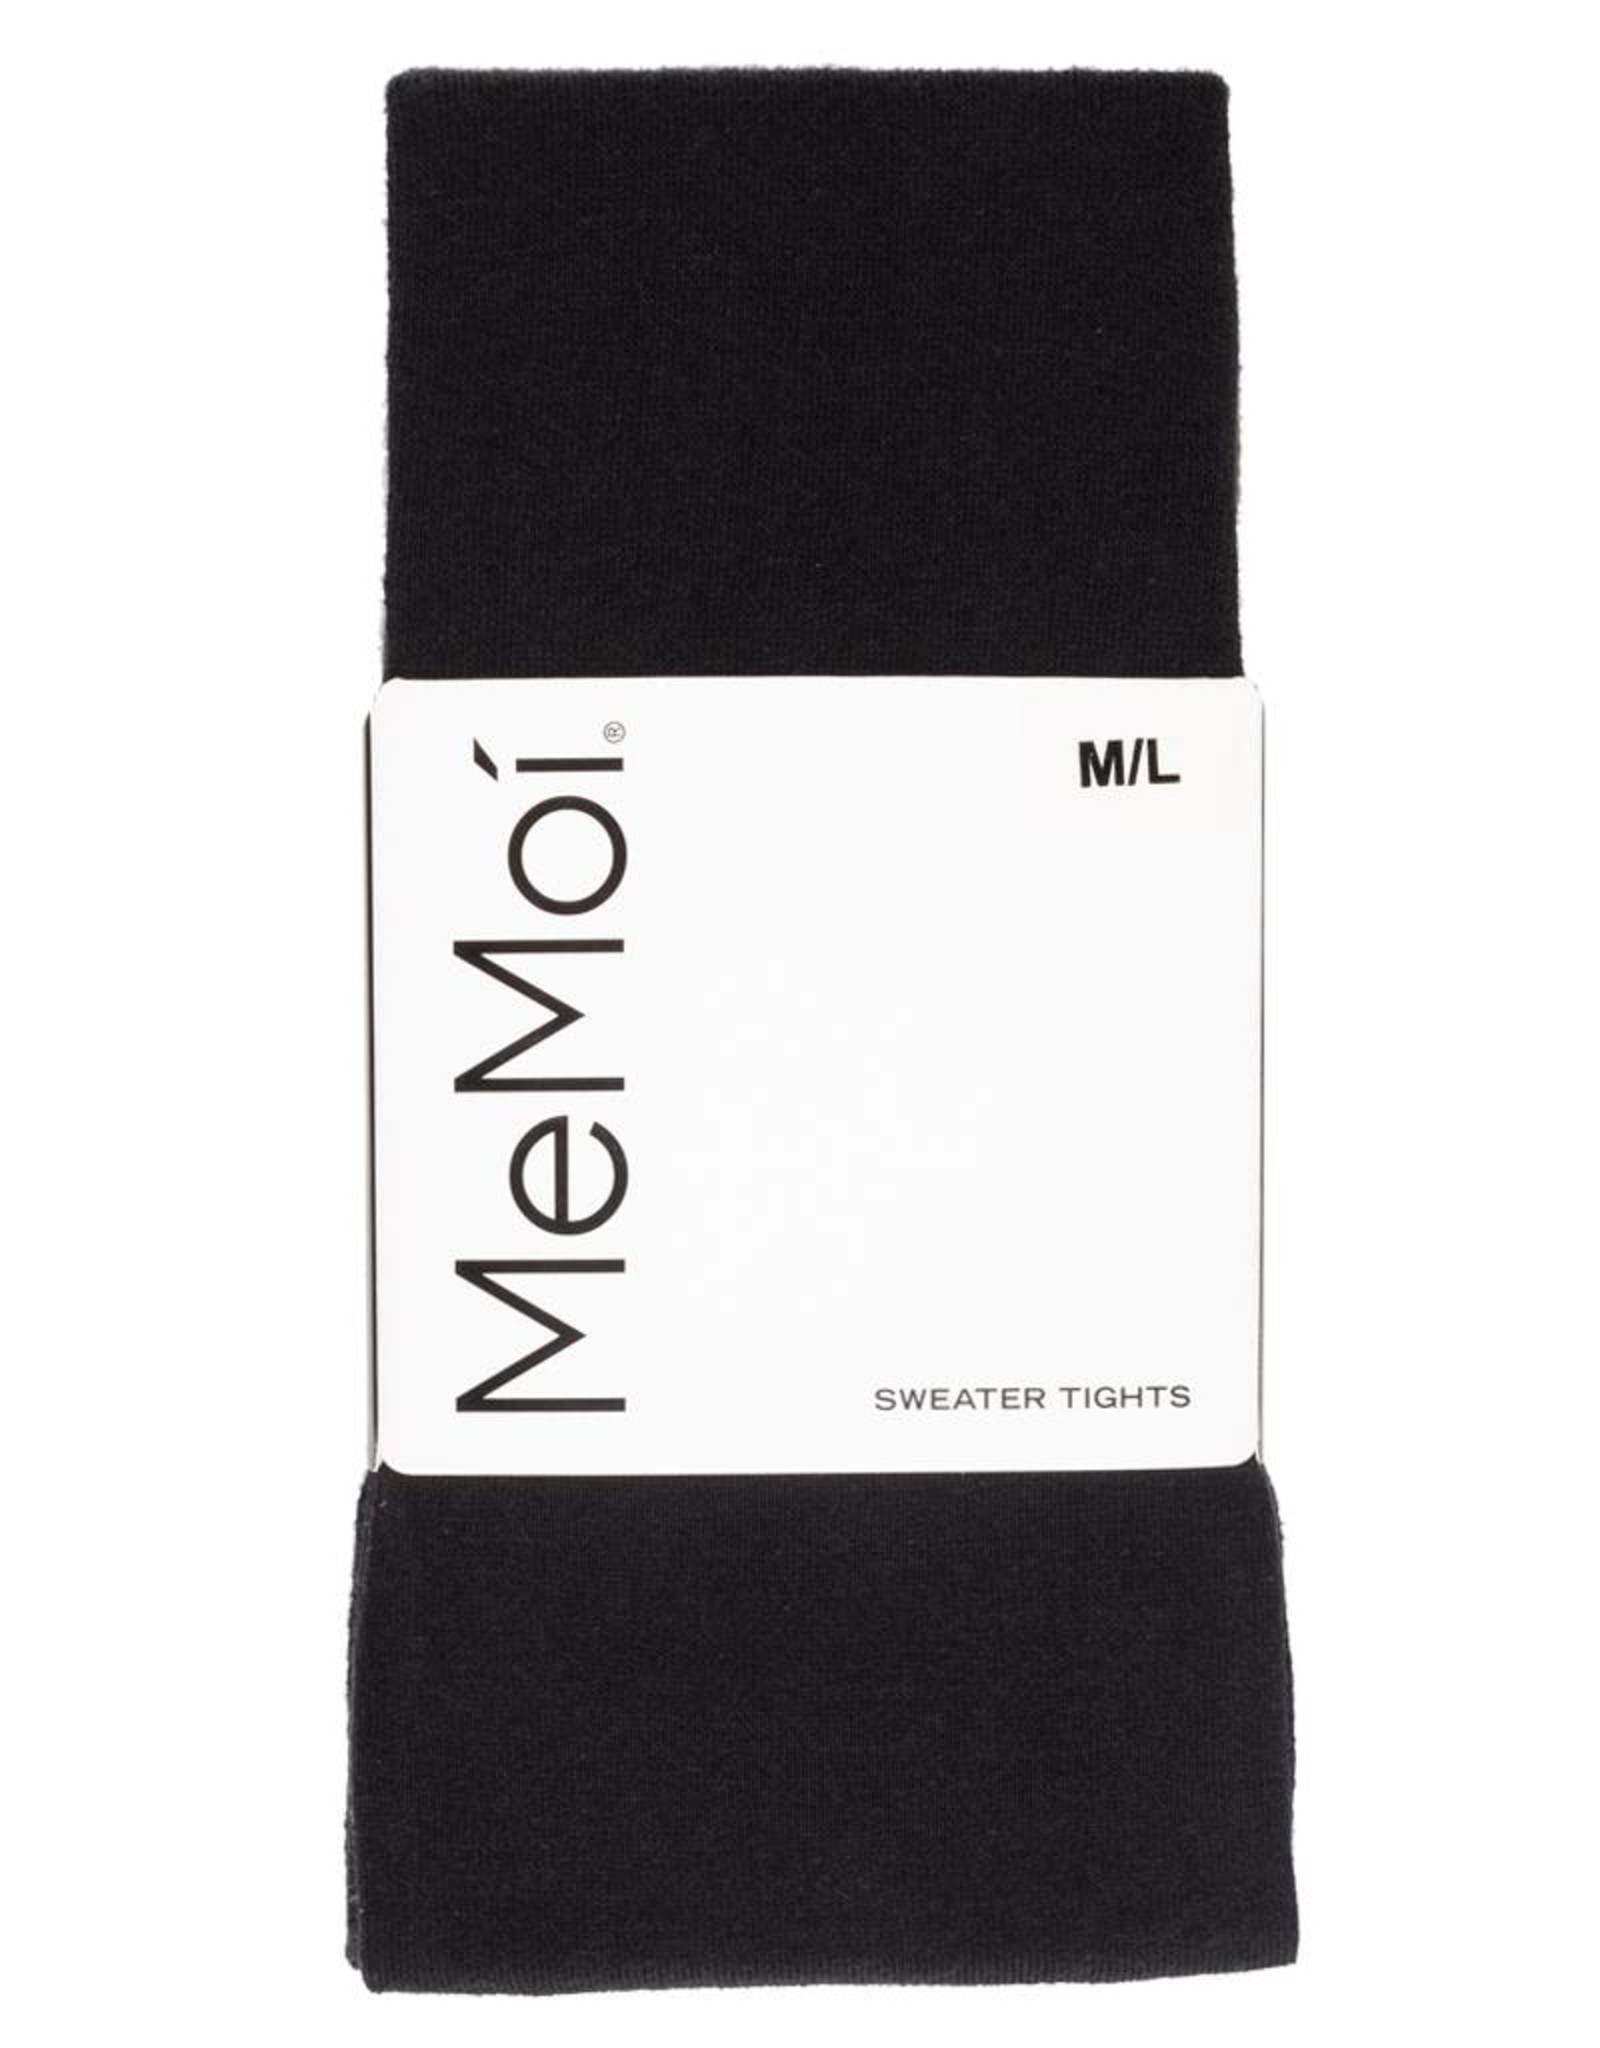 Memoi Memoi Sweater Tights